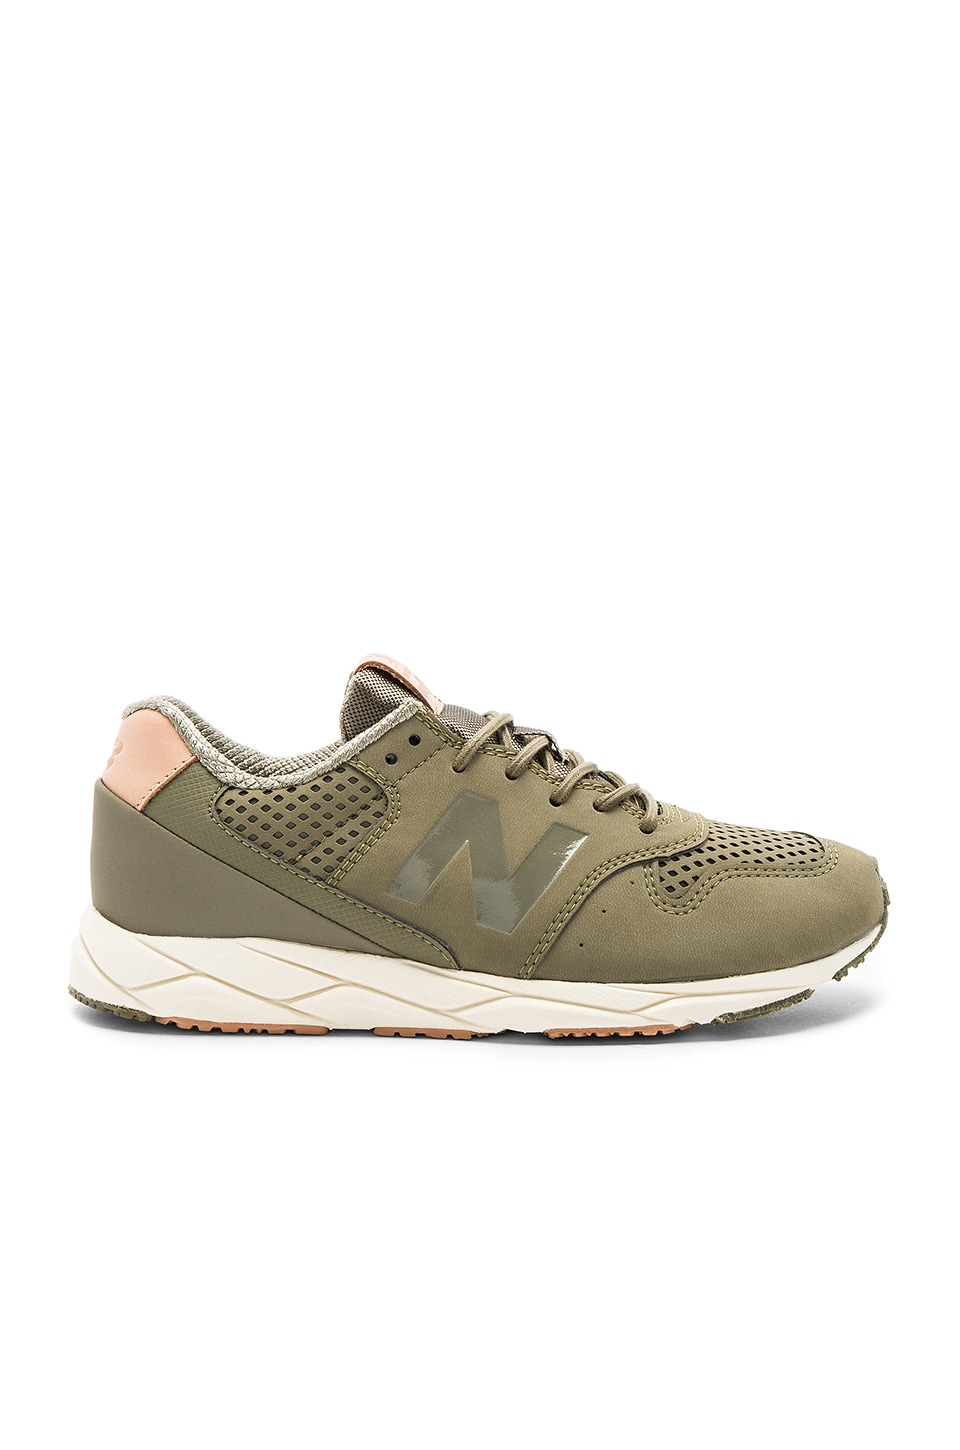 New Balance Mash Up Sneaker in Pike